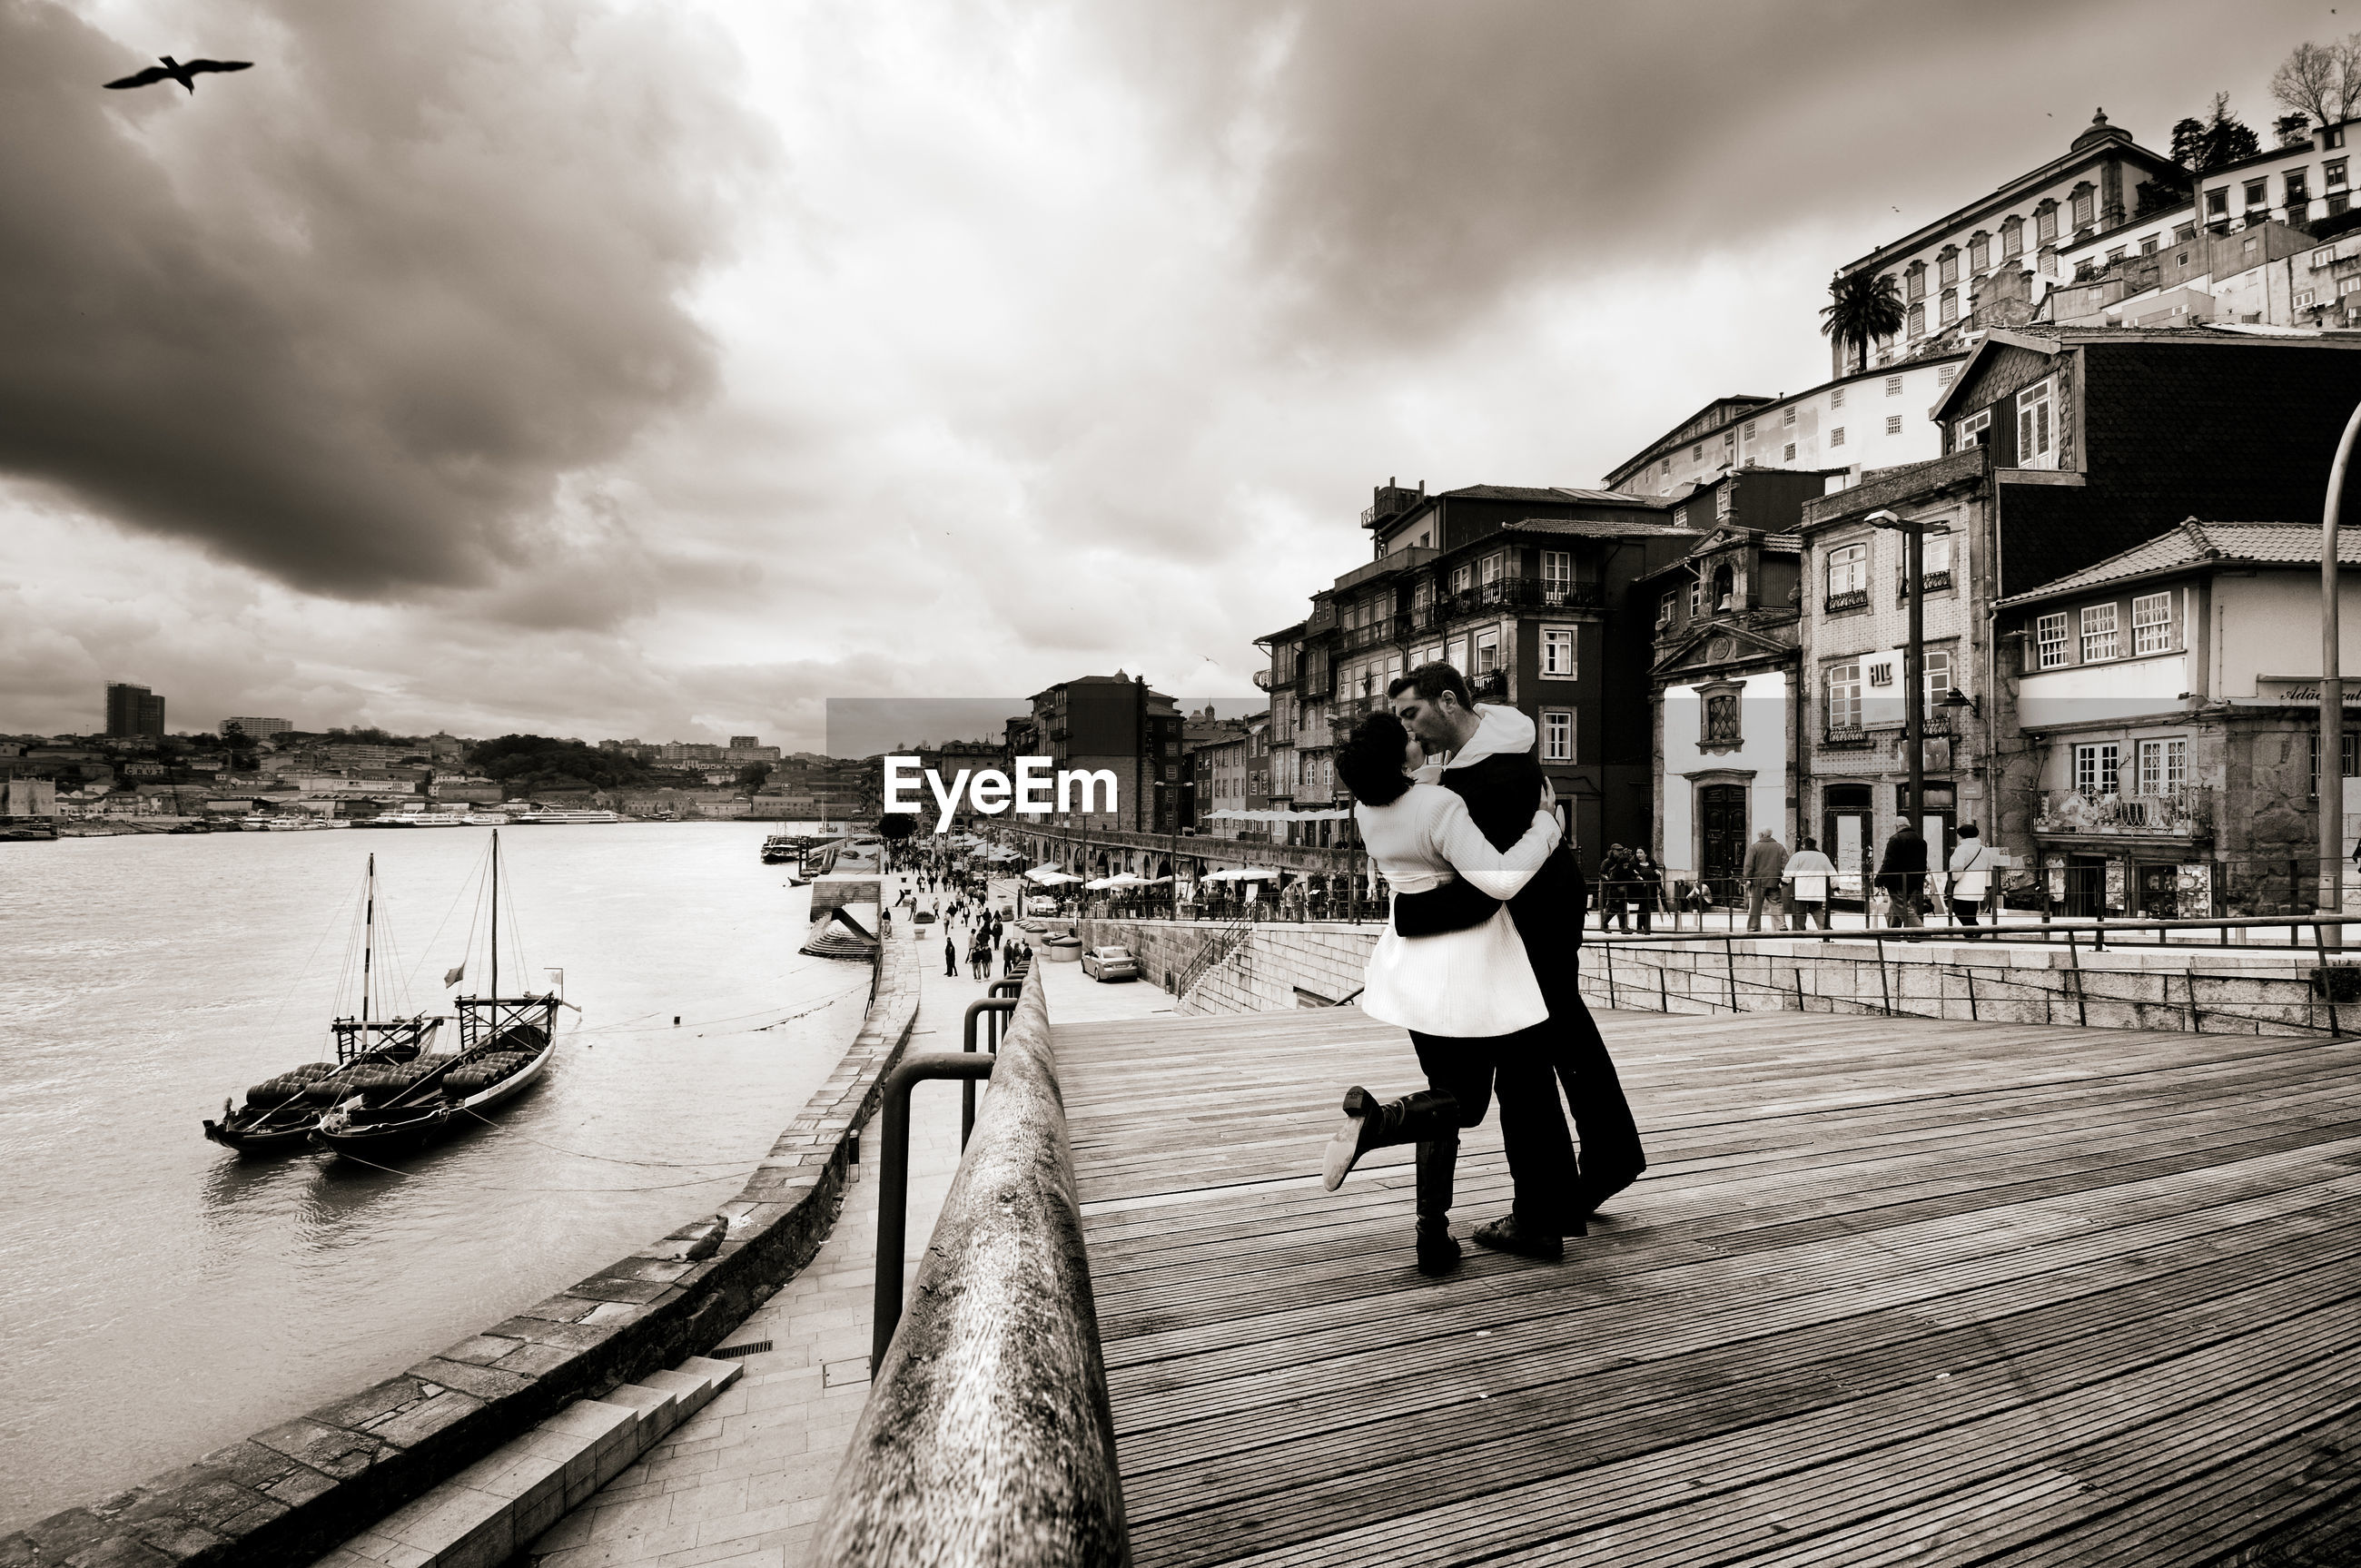 Couple kissing at beach in city against sky